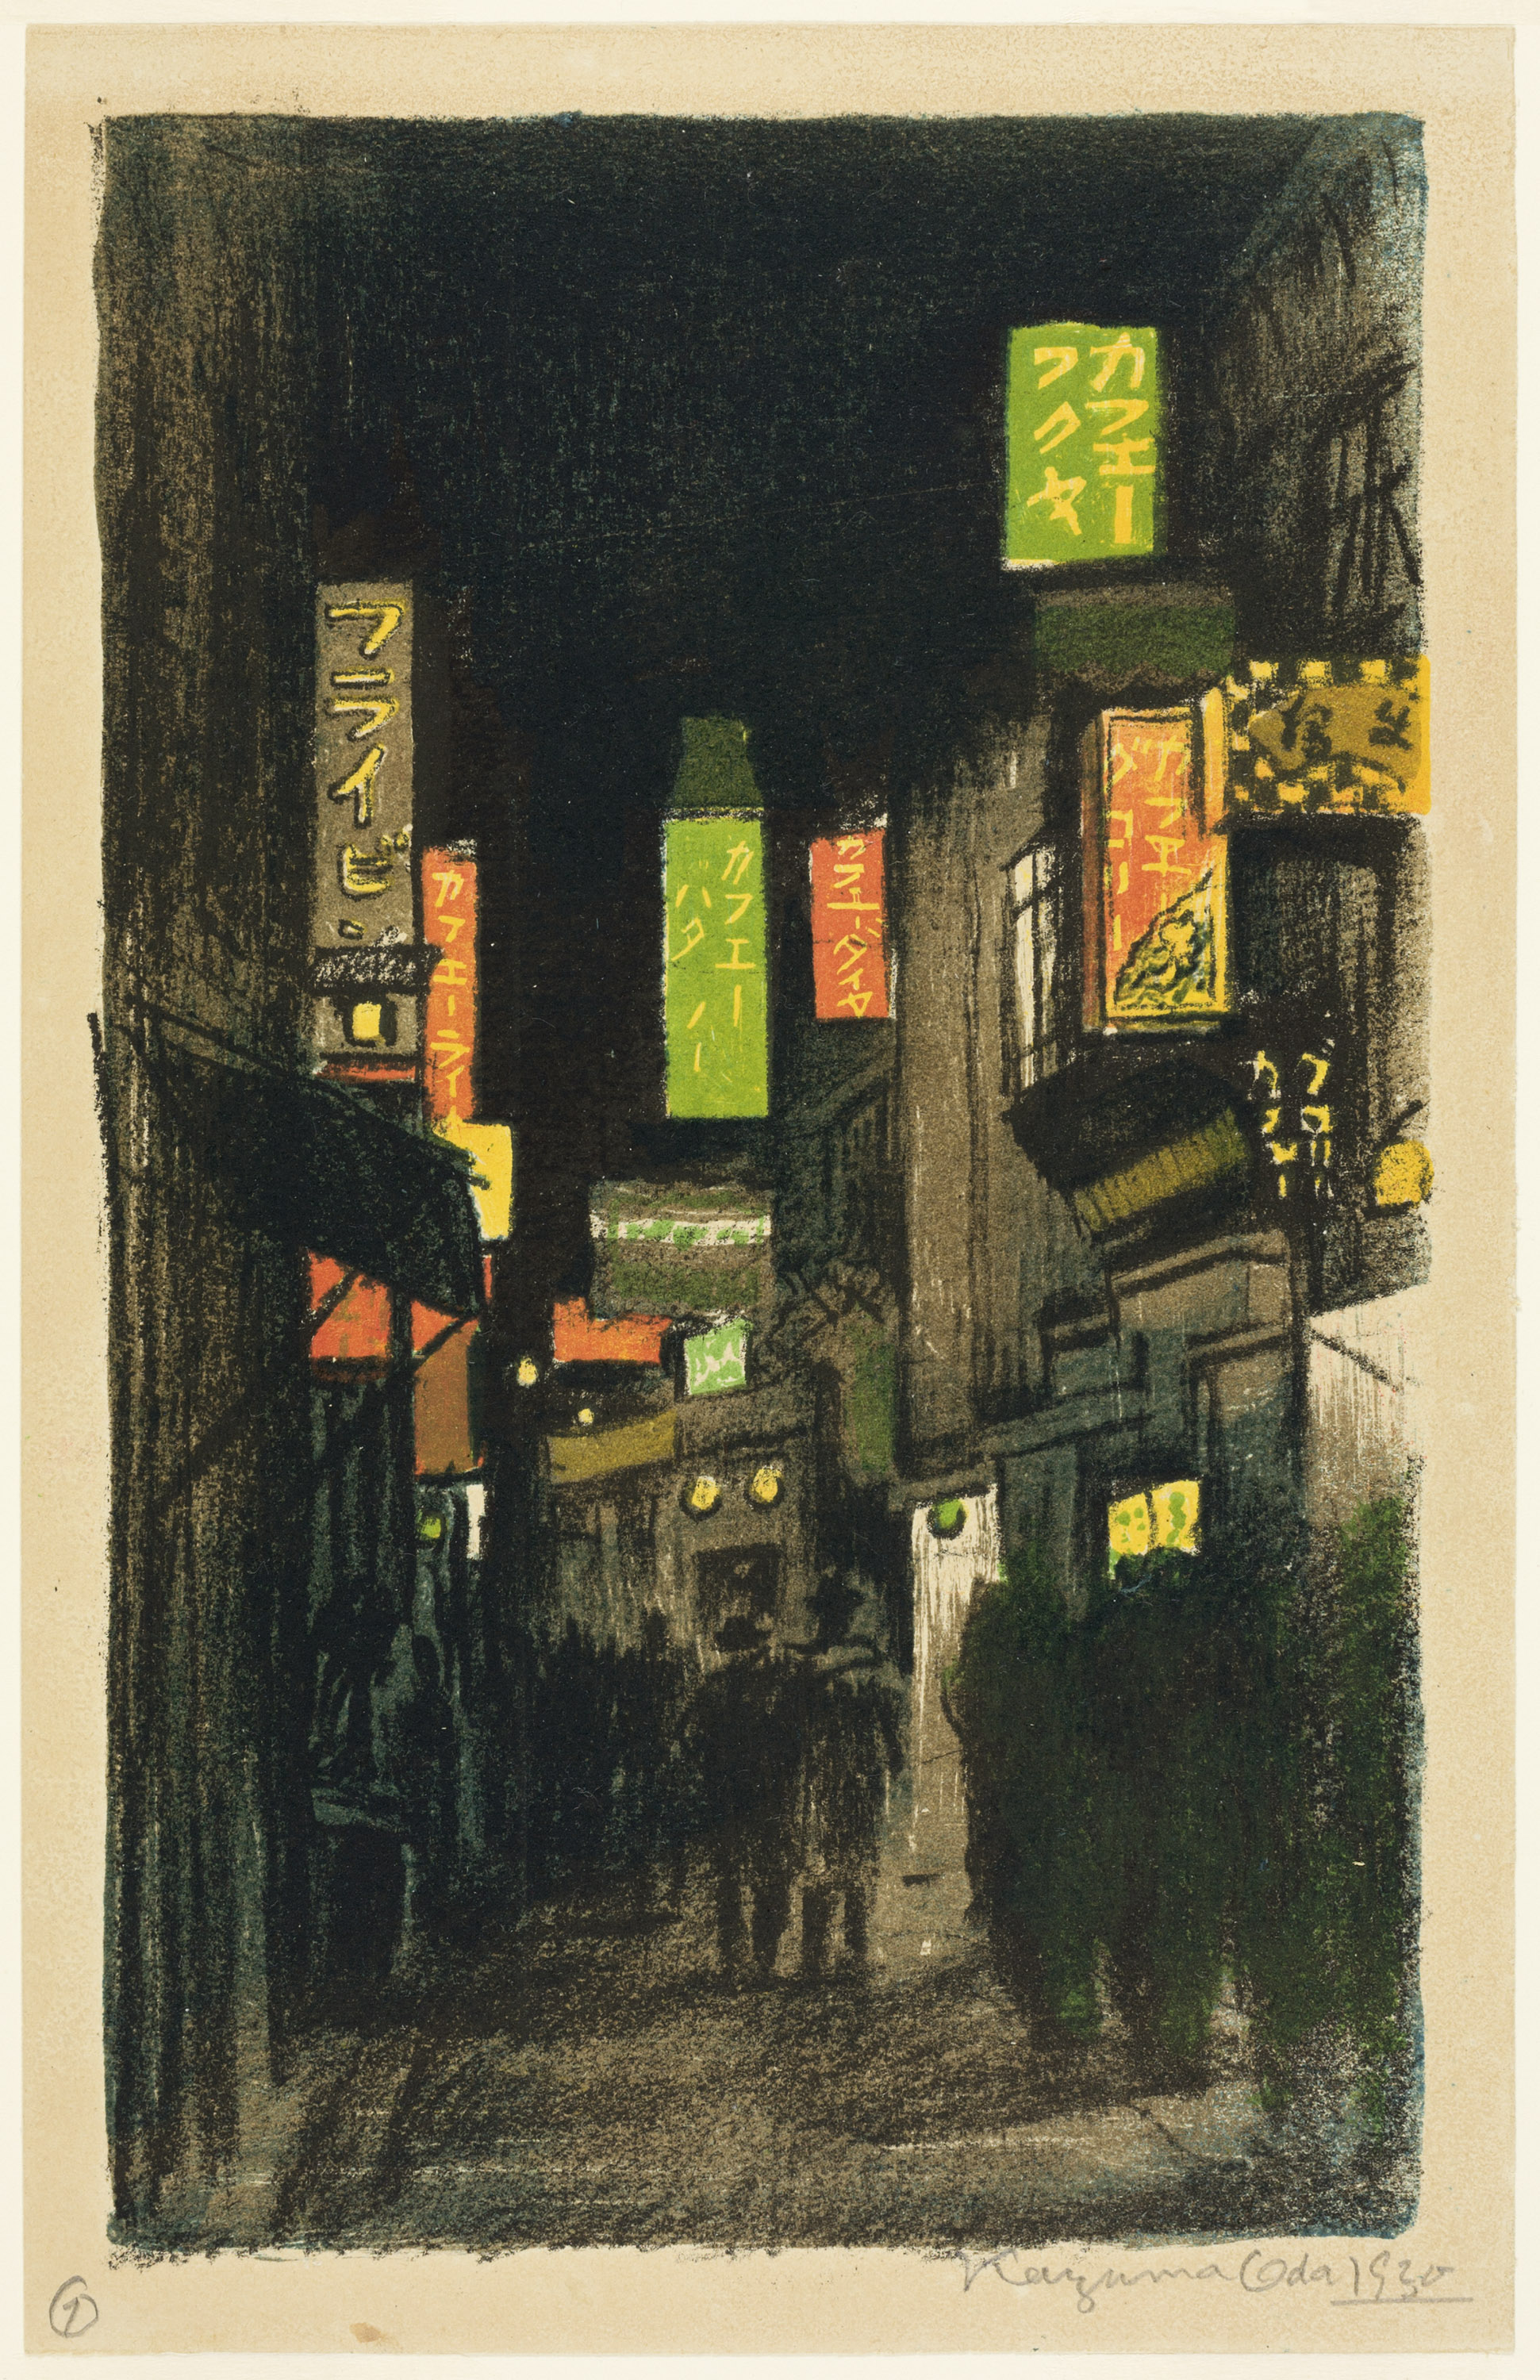 printmakers innovated in modern japan a review of city and country